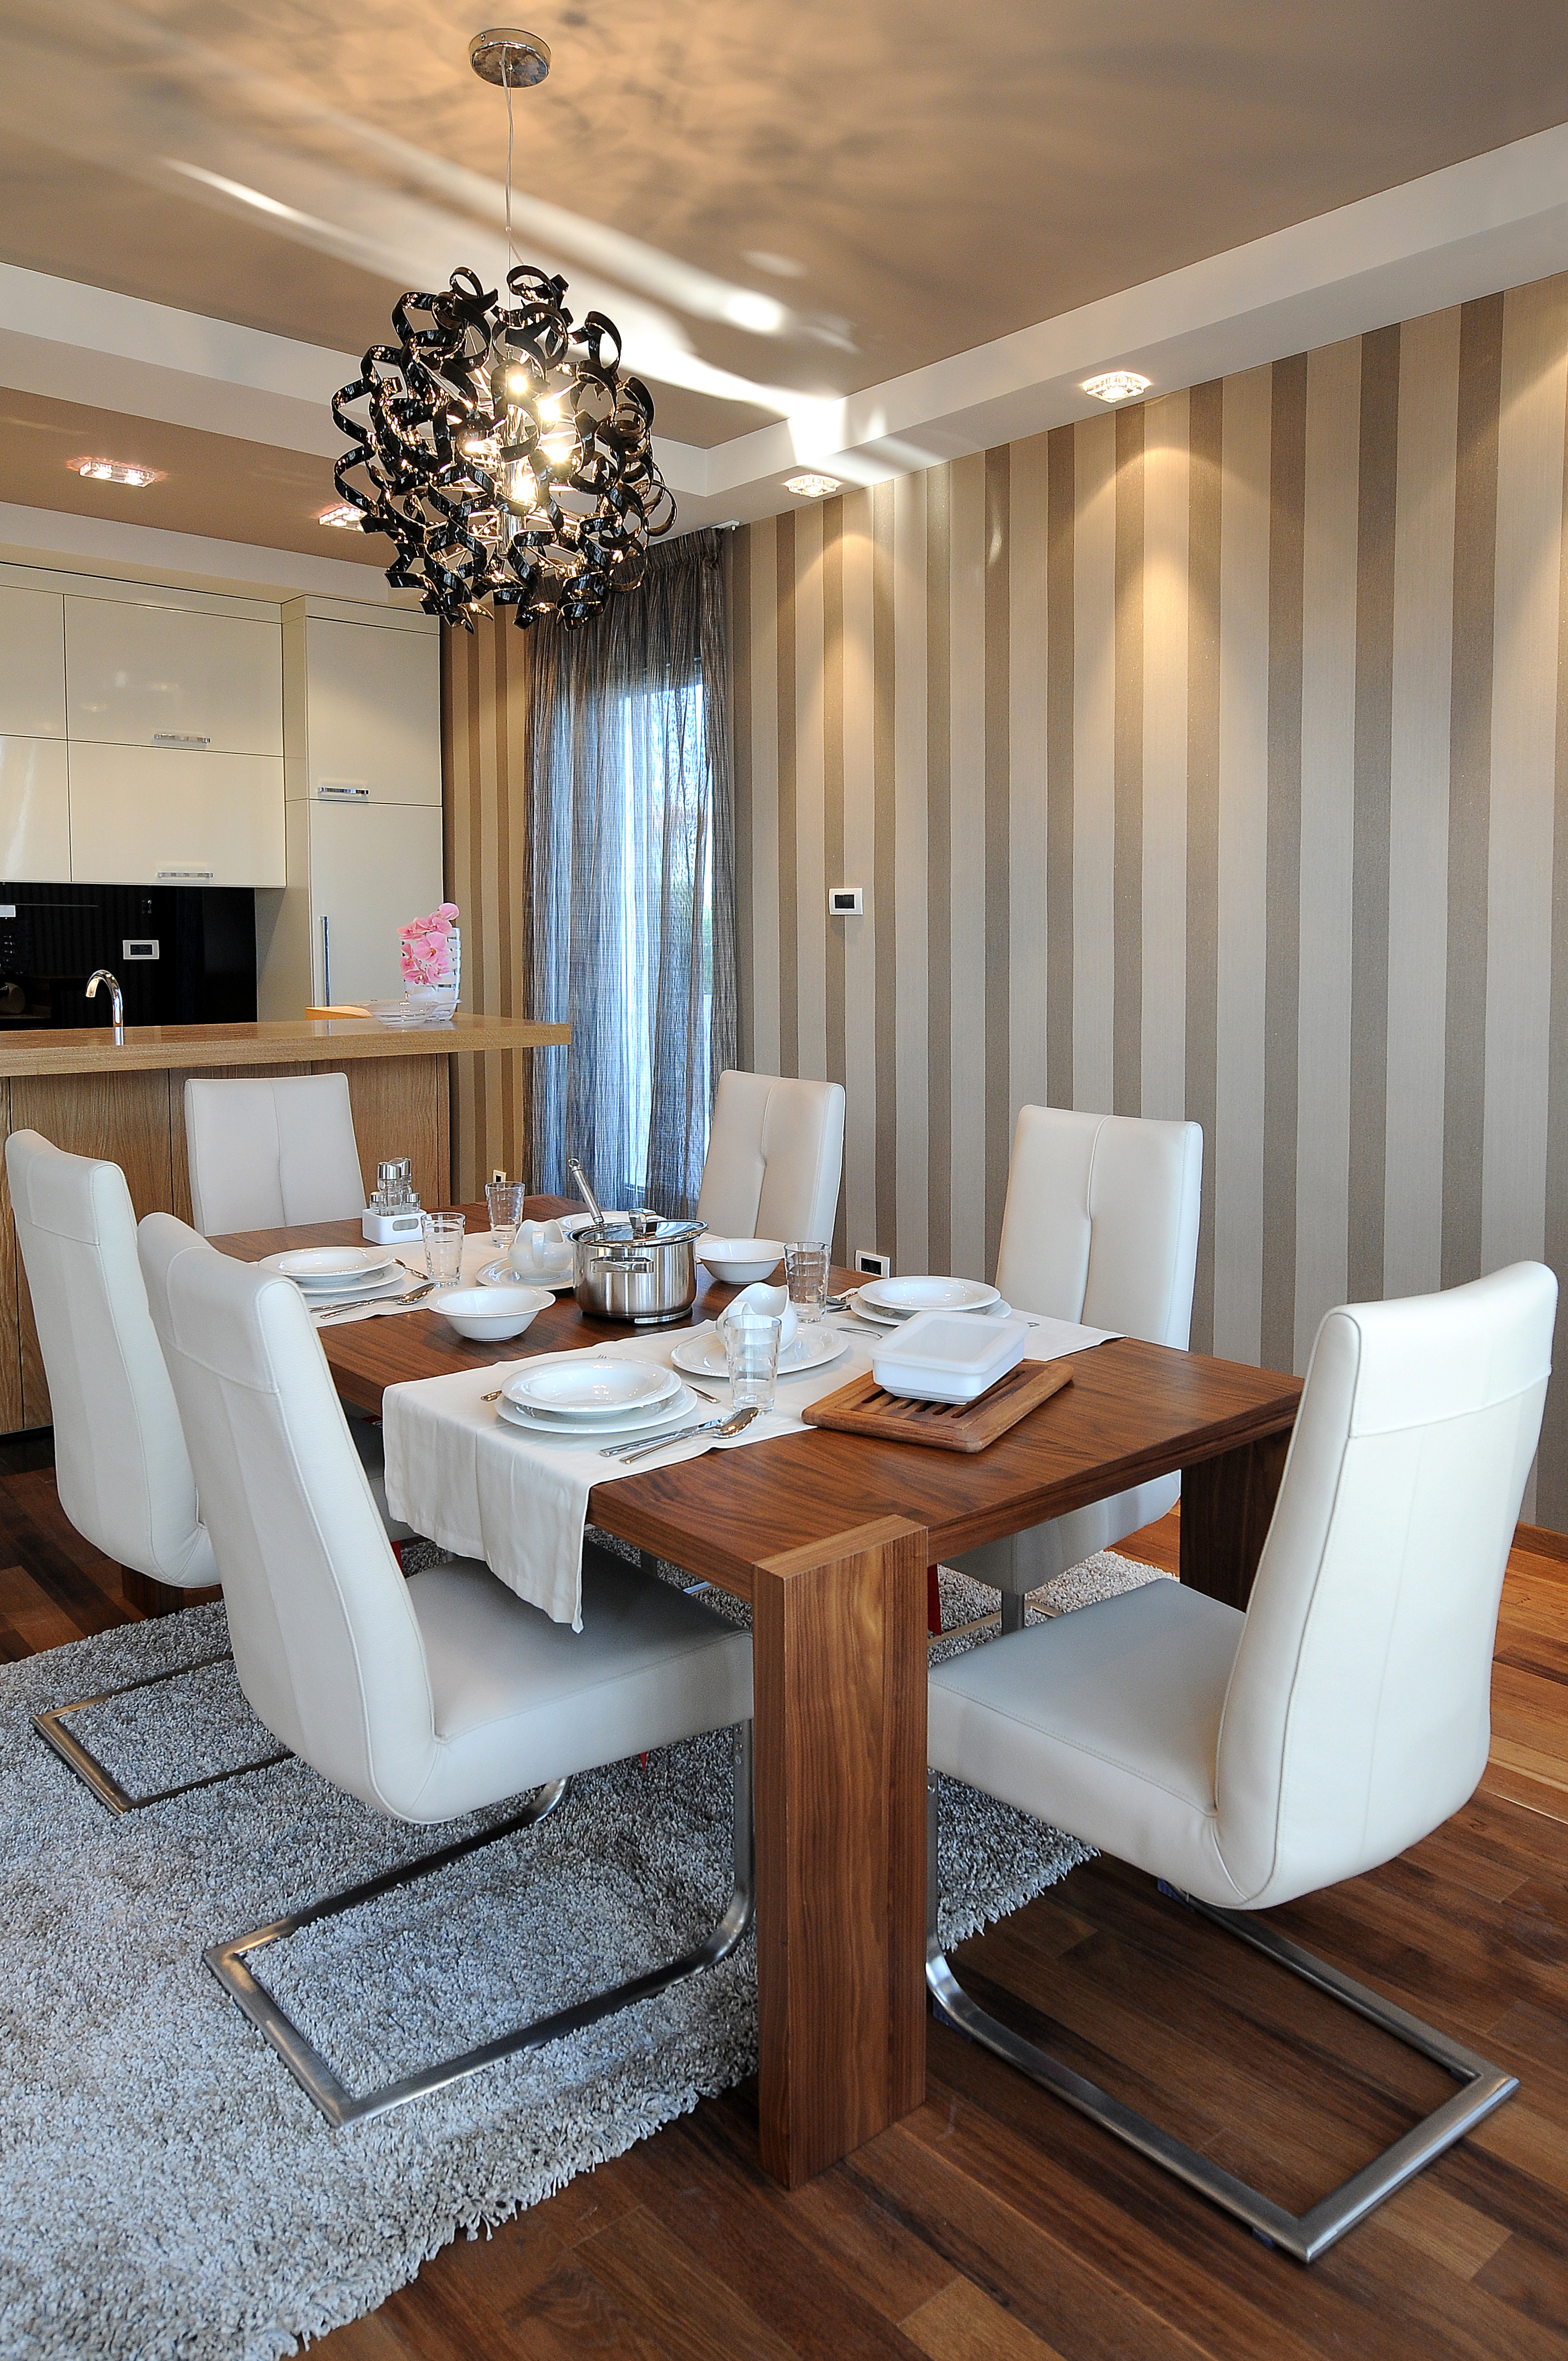 Dining Room set with new Chandelier